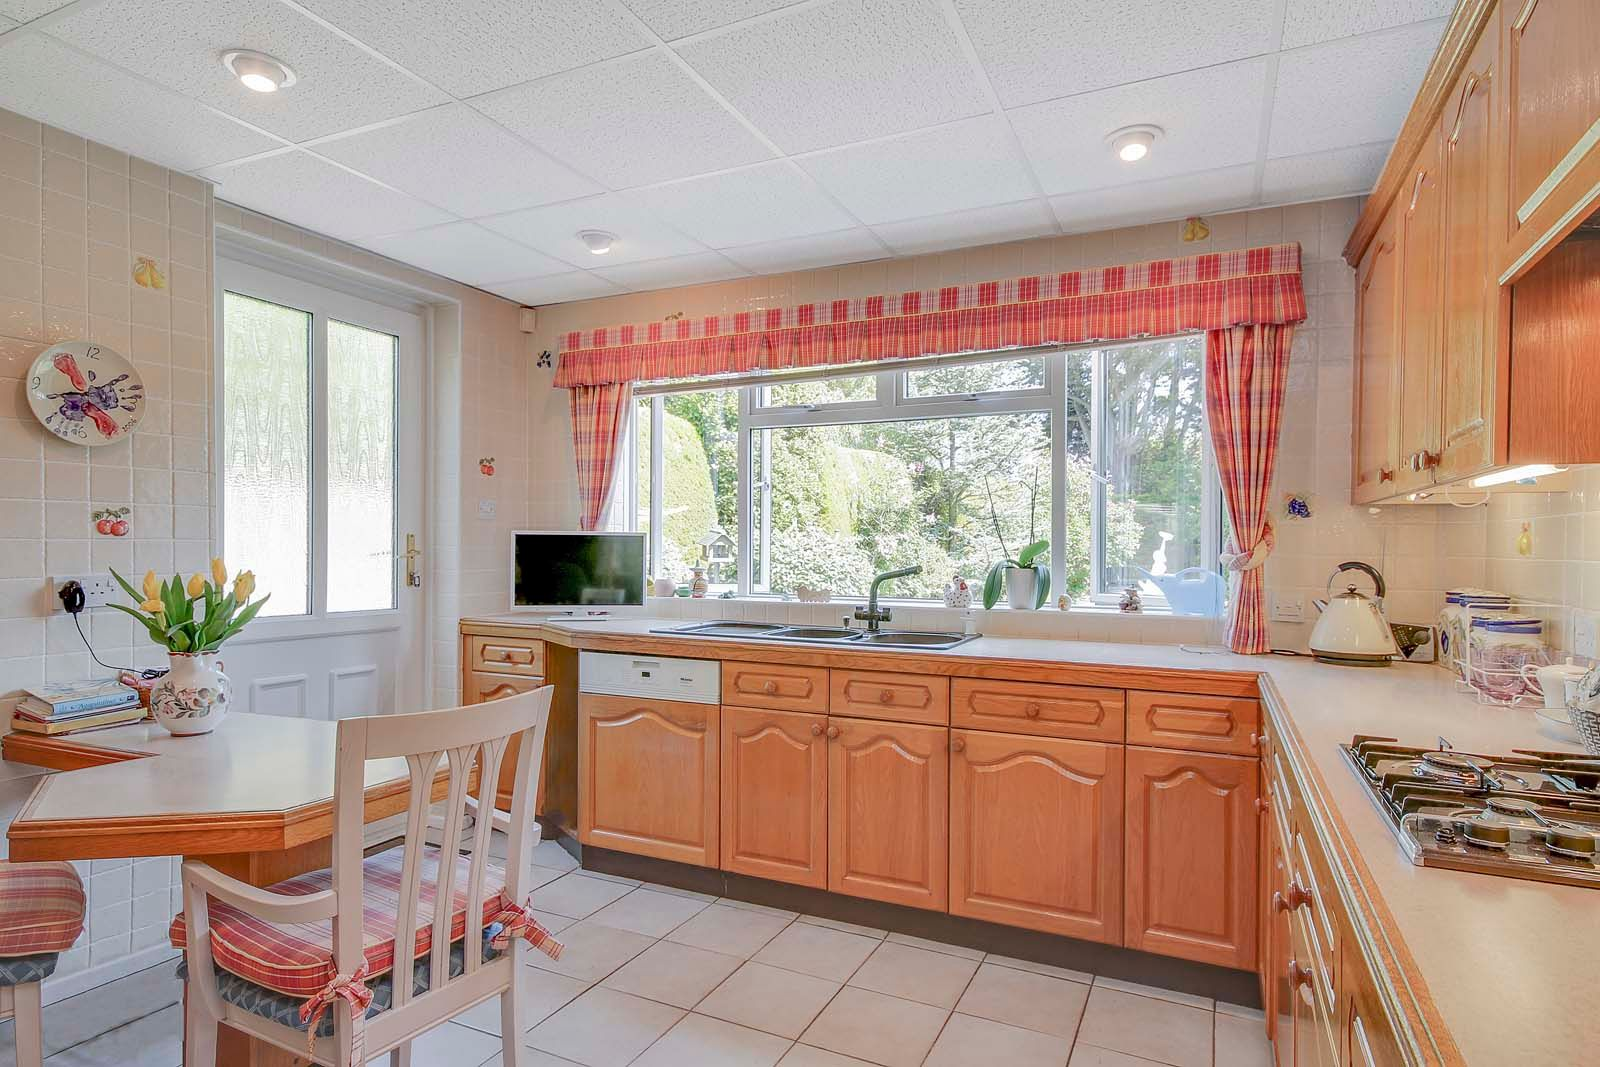 5 bed house for sale in The Ridings COMP 2019 5